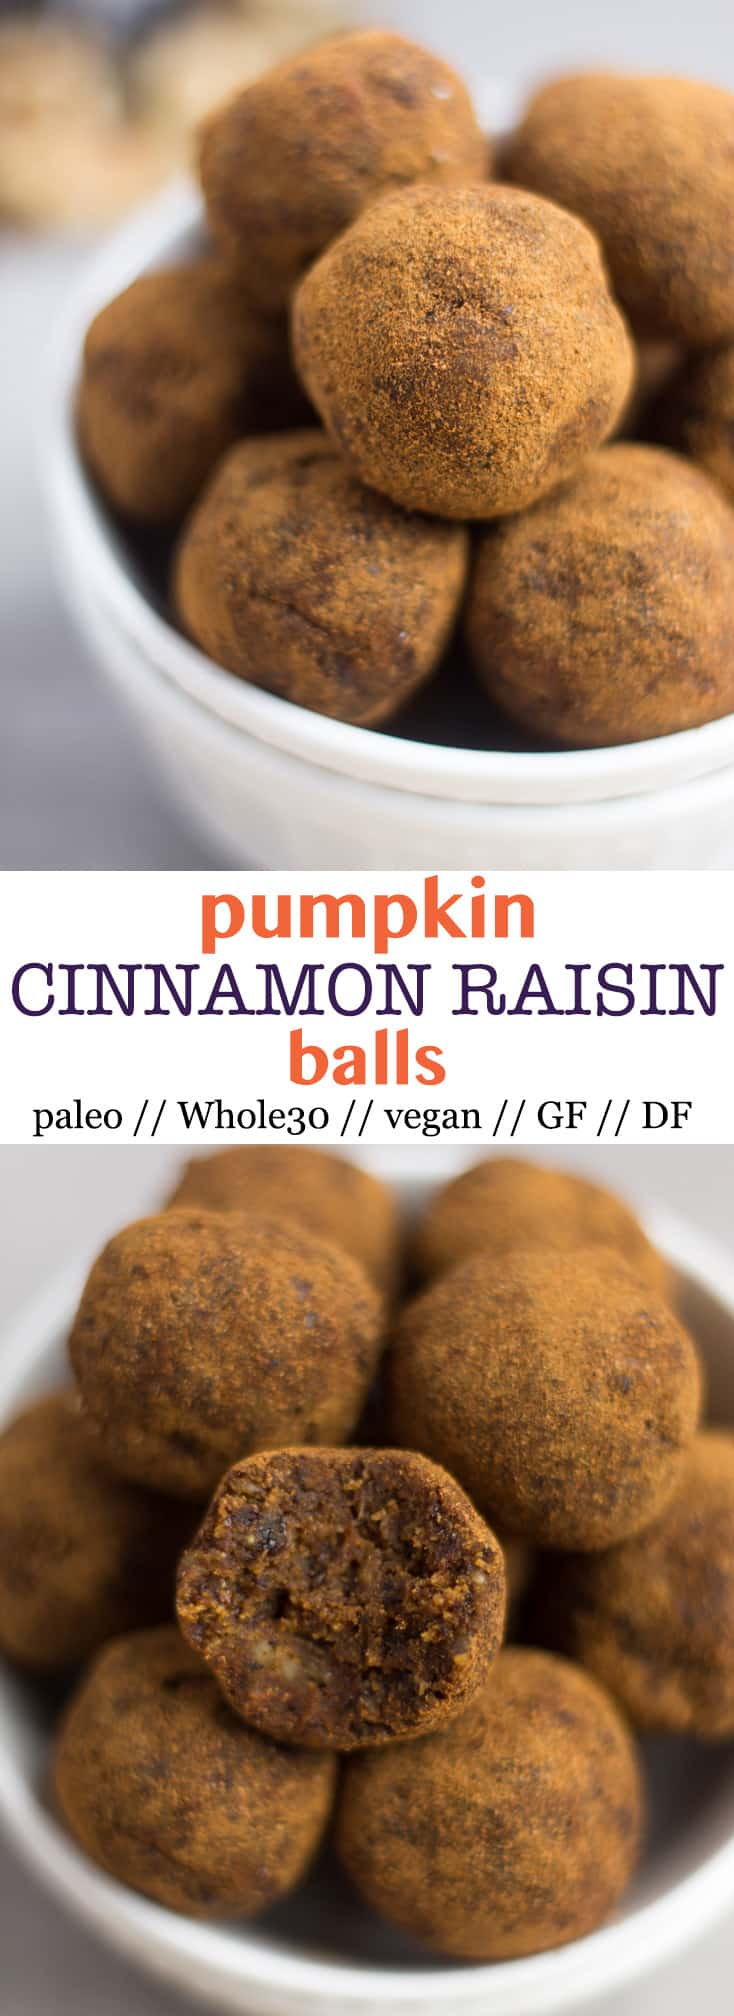 Classic fall flavors make their way into thesePumpkin Cinnamon Raisin Balls for the perfect snack or energy ball pick-me-up. Vegan, paleo, and Whole30 approved! - Eat the Gains